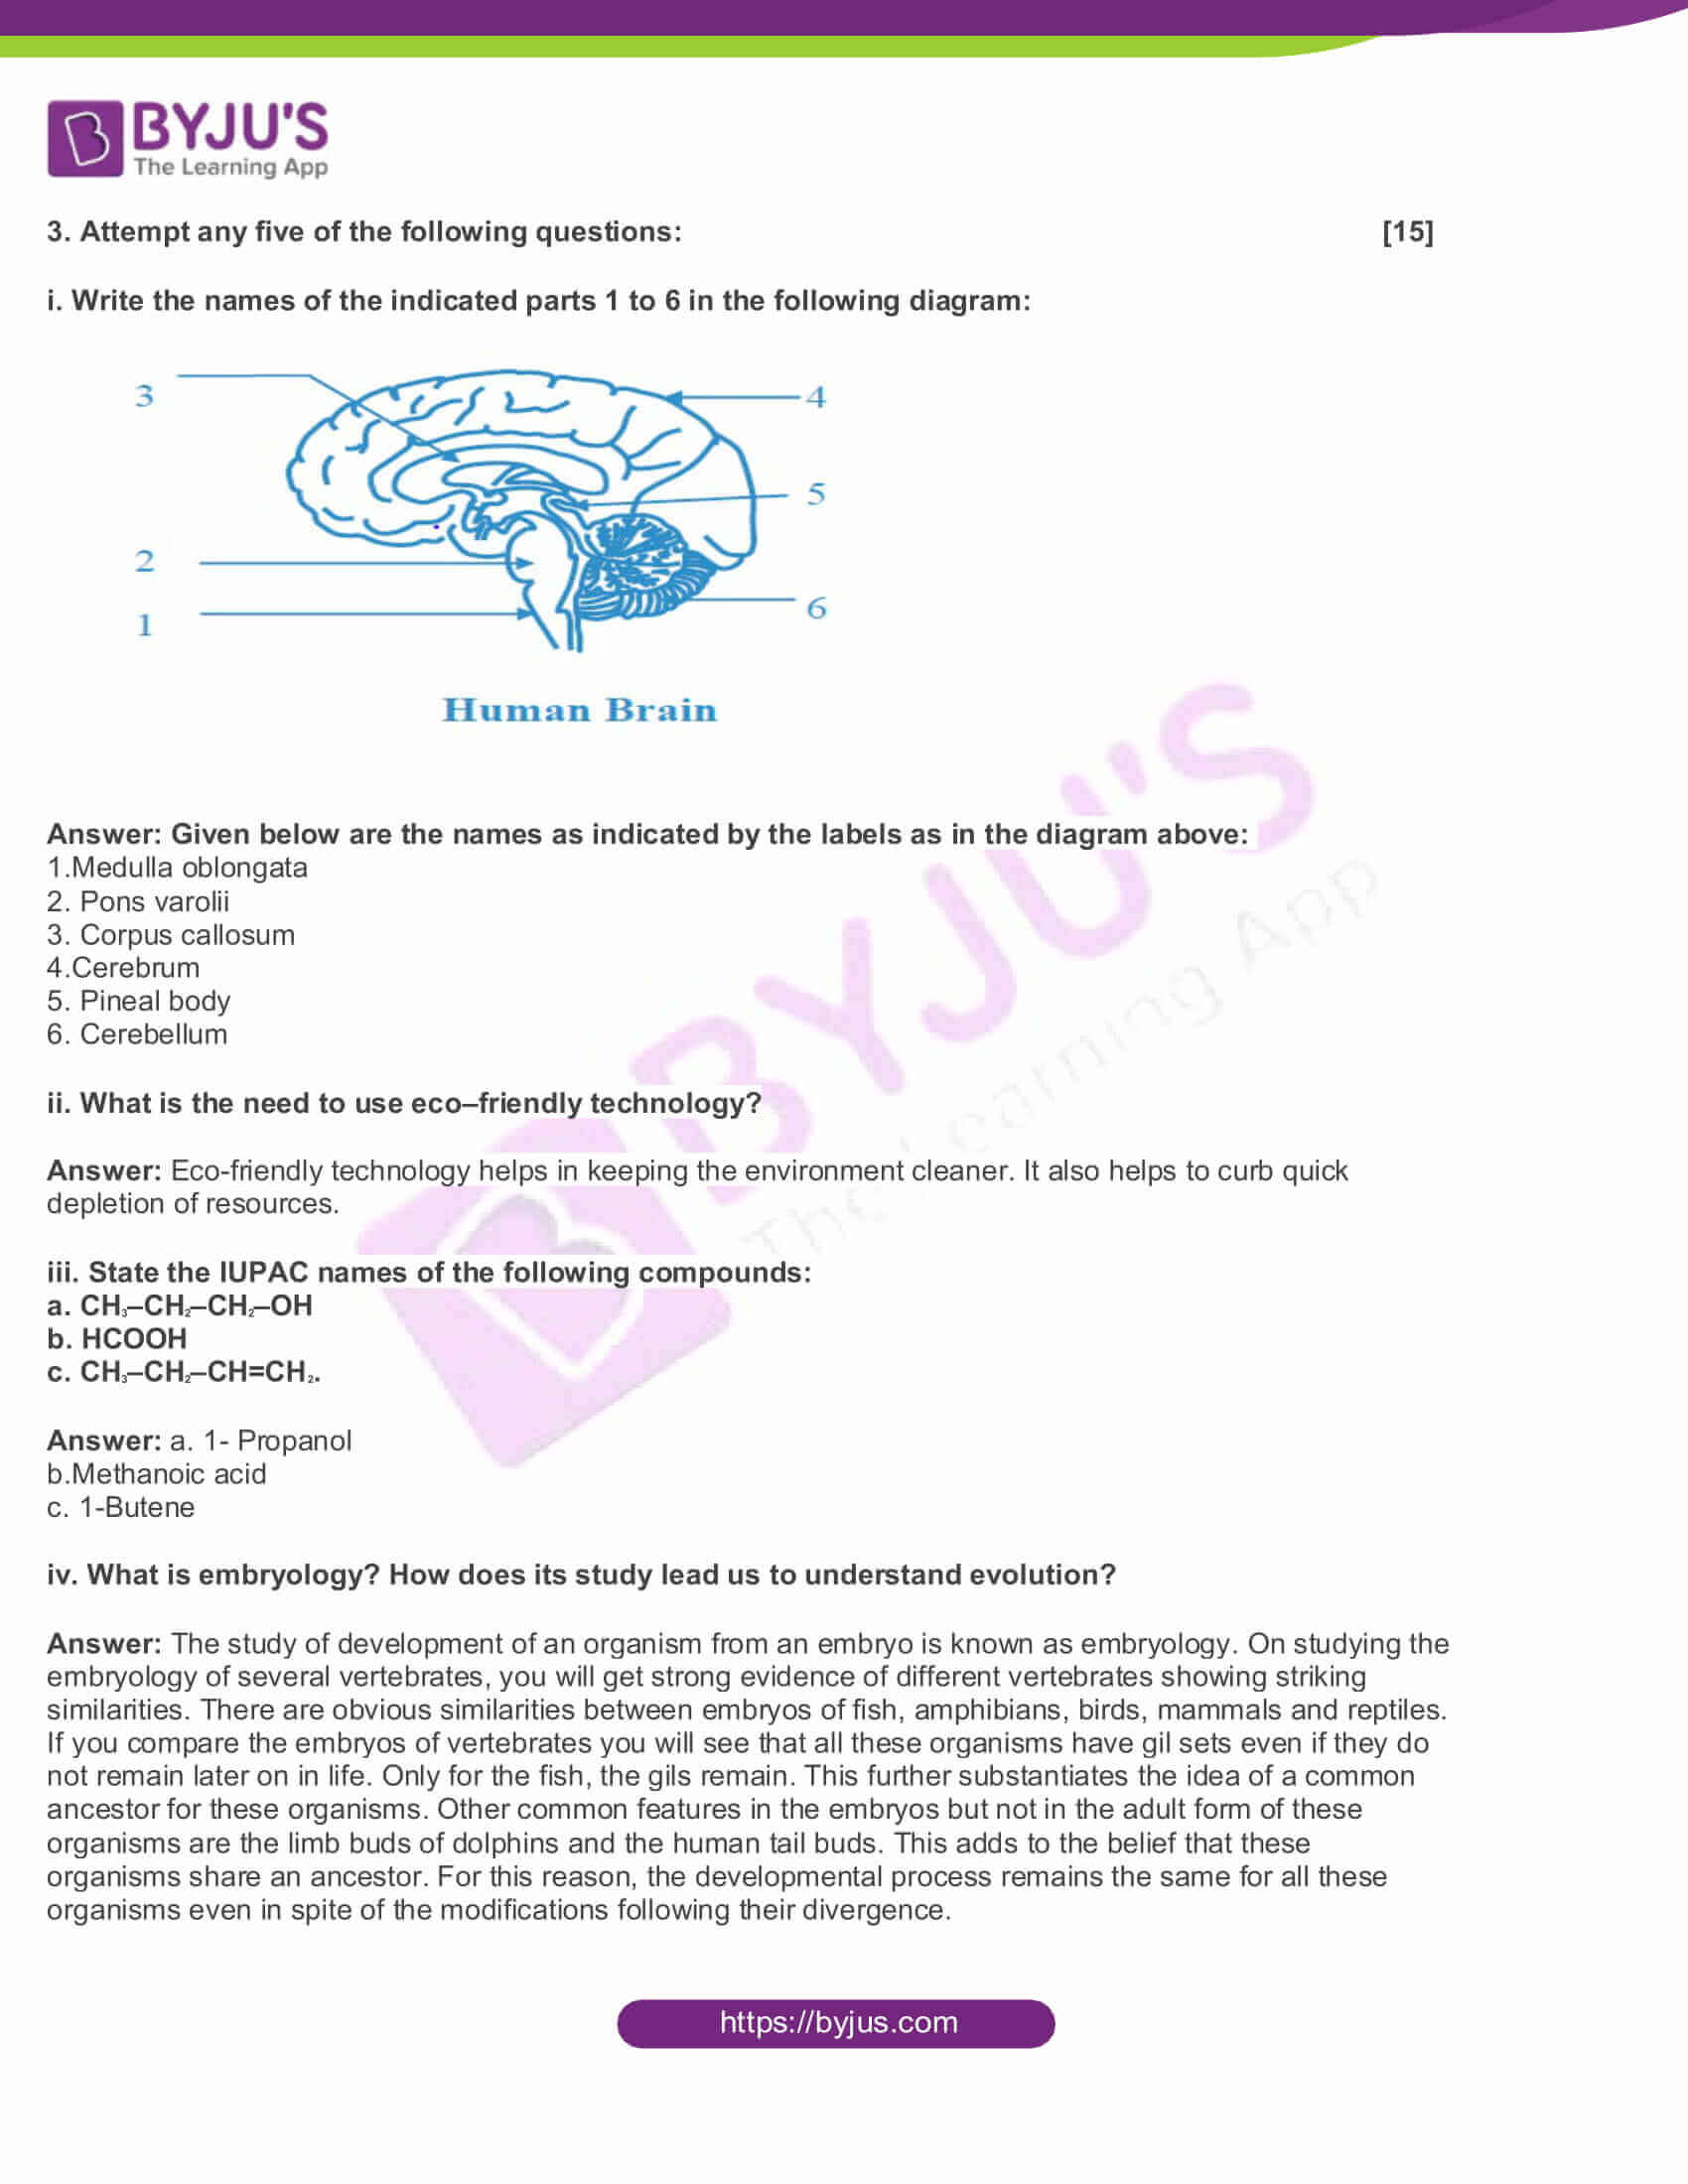 MSBSHSE Class 10 Science and Technology Part II Solved Previous Year Paper 2017 4